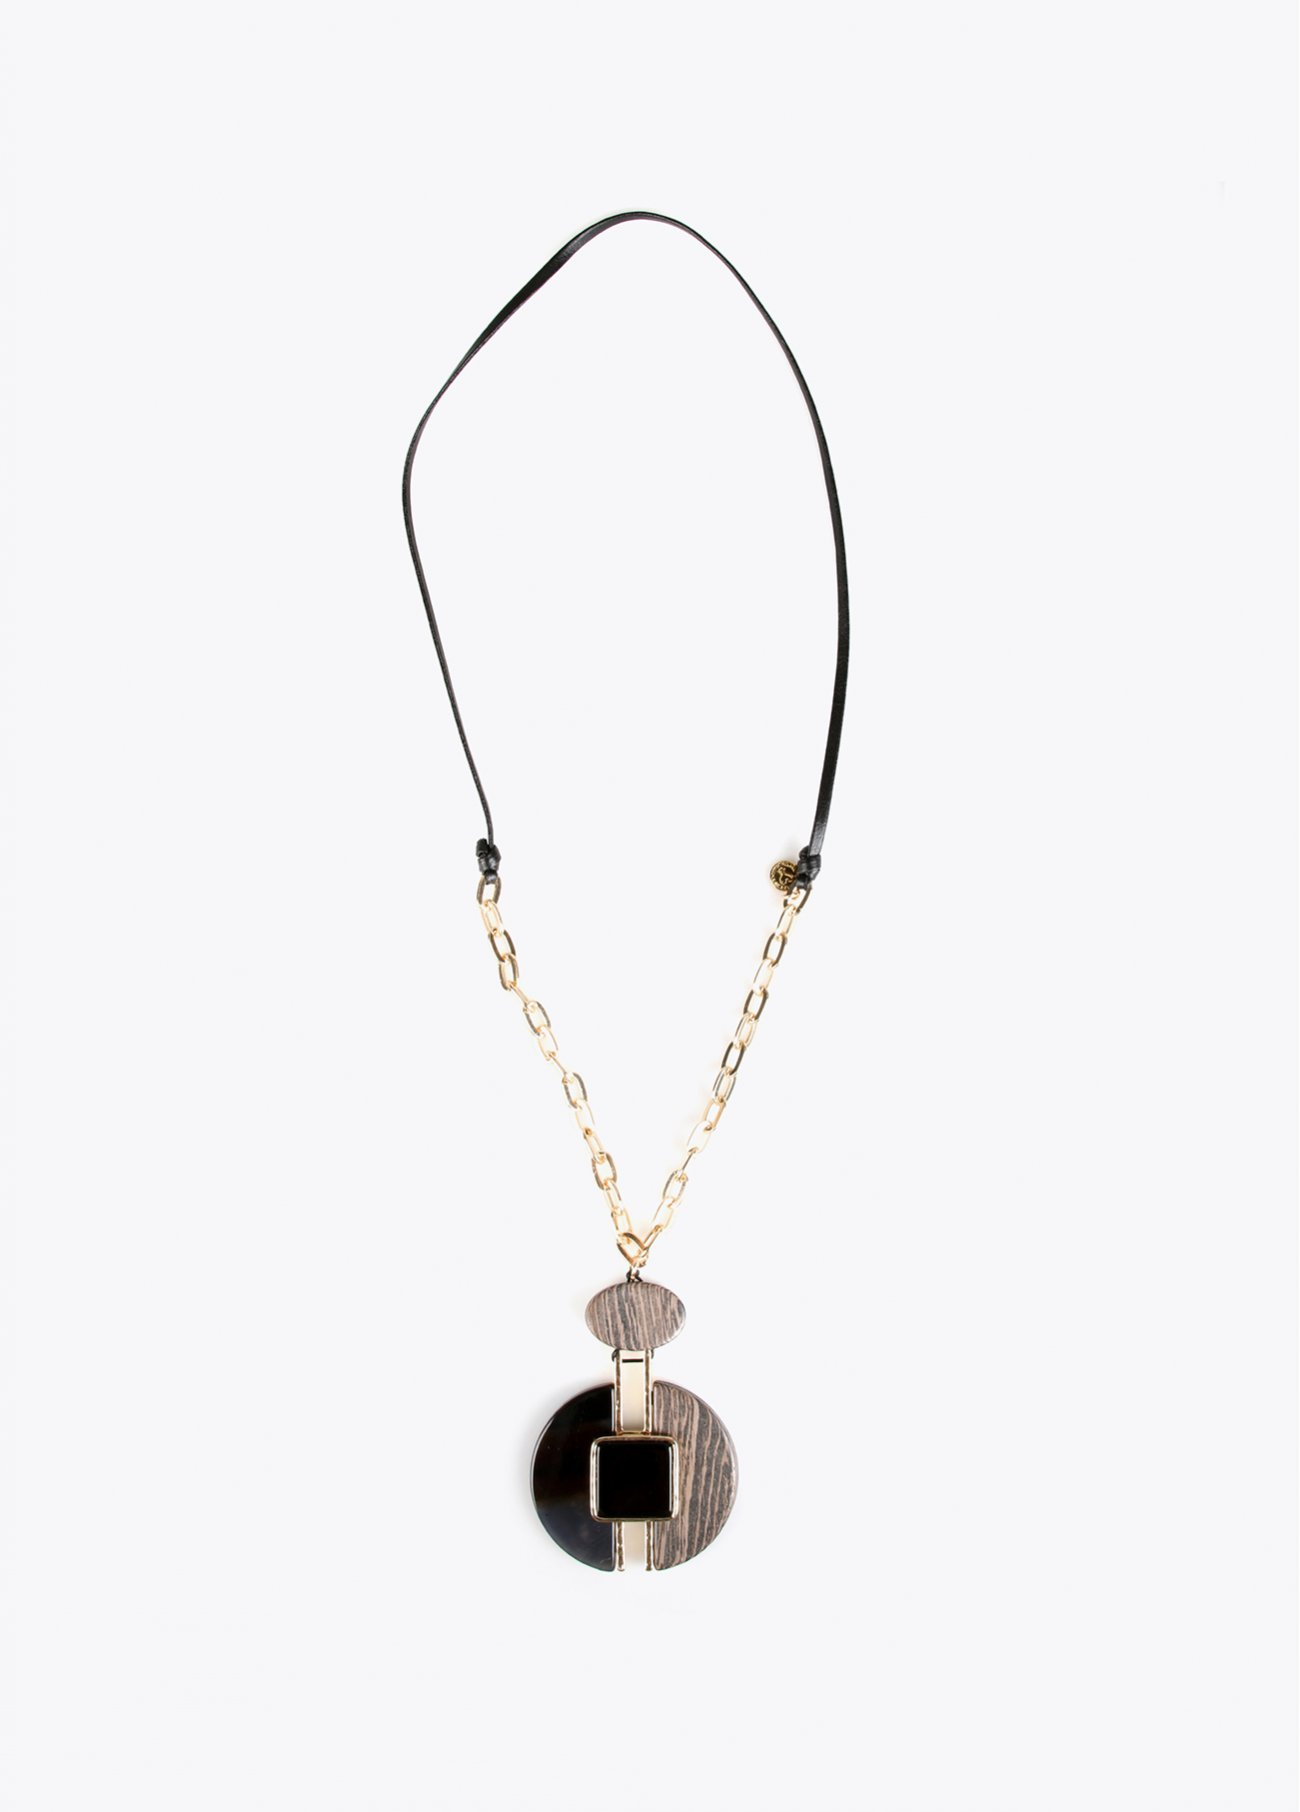 Necklace with wood round pendant